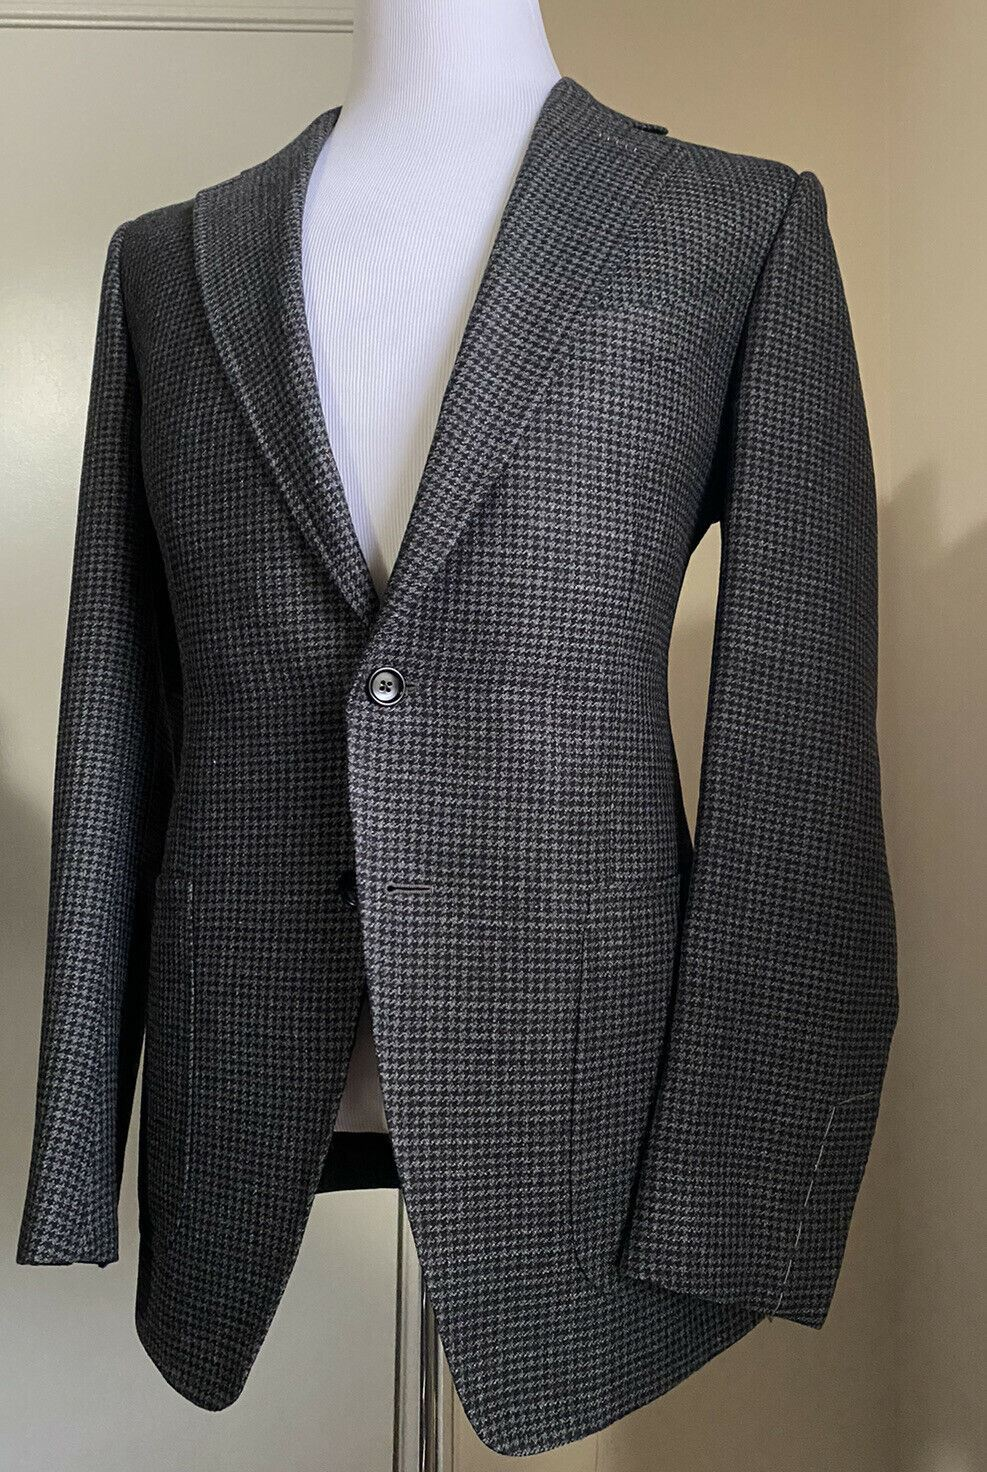 NWT $3950 TOM FORD Mens Sport Coat Jacket Blazer Gray/Black 40R US/50R Eu Italy